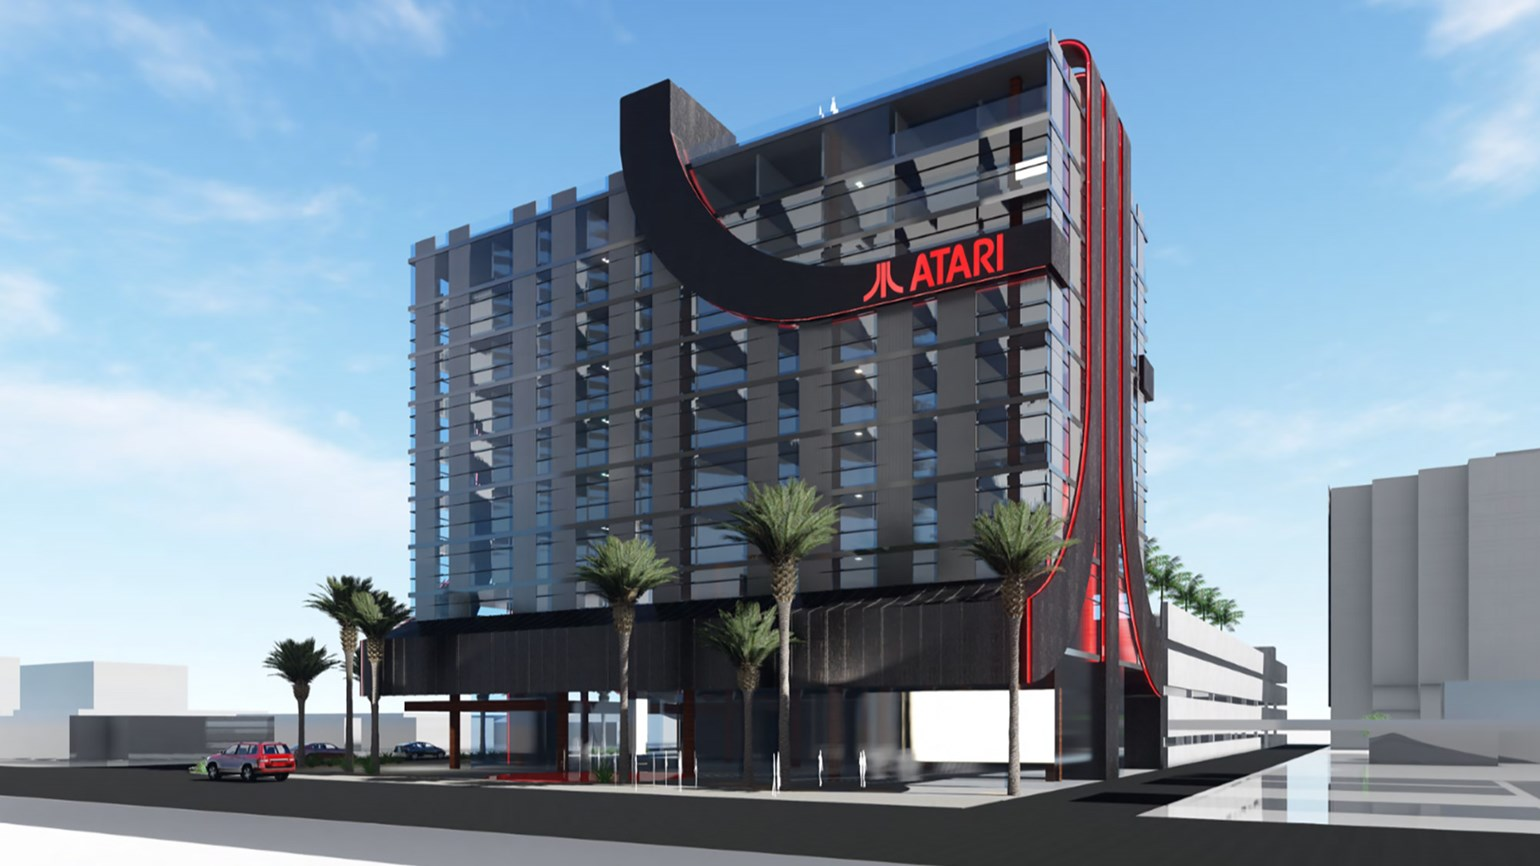 Atari to become gaming hotel brand